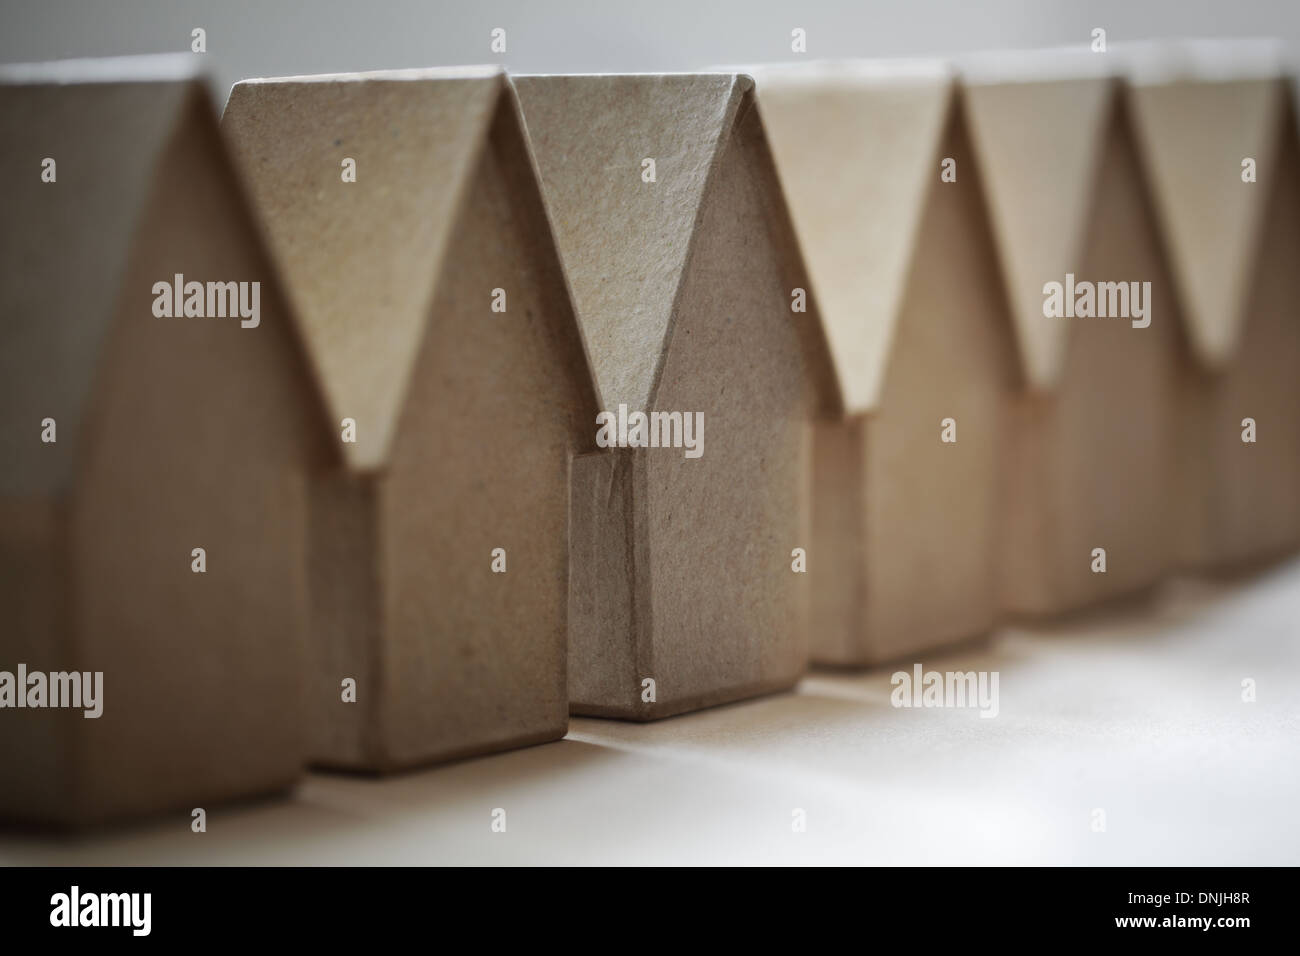 Real estate market - Stock Image